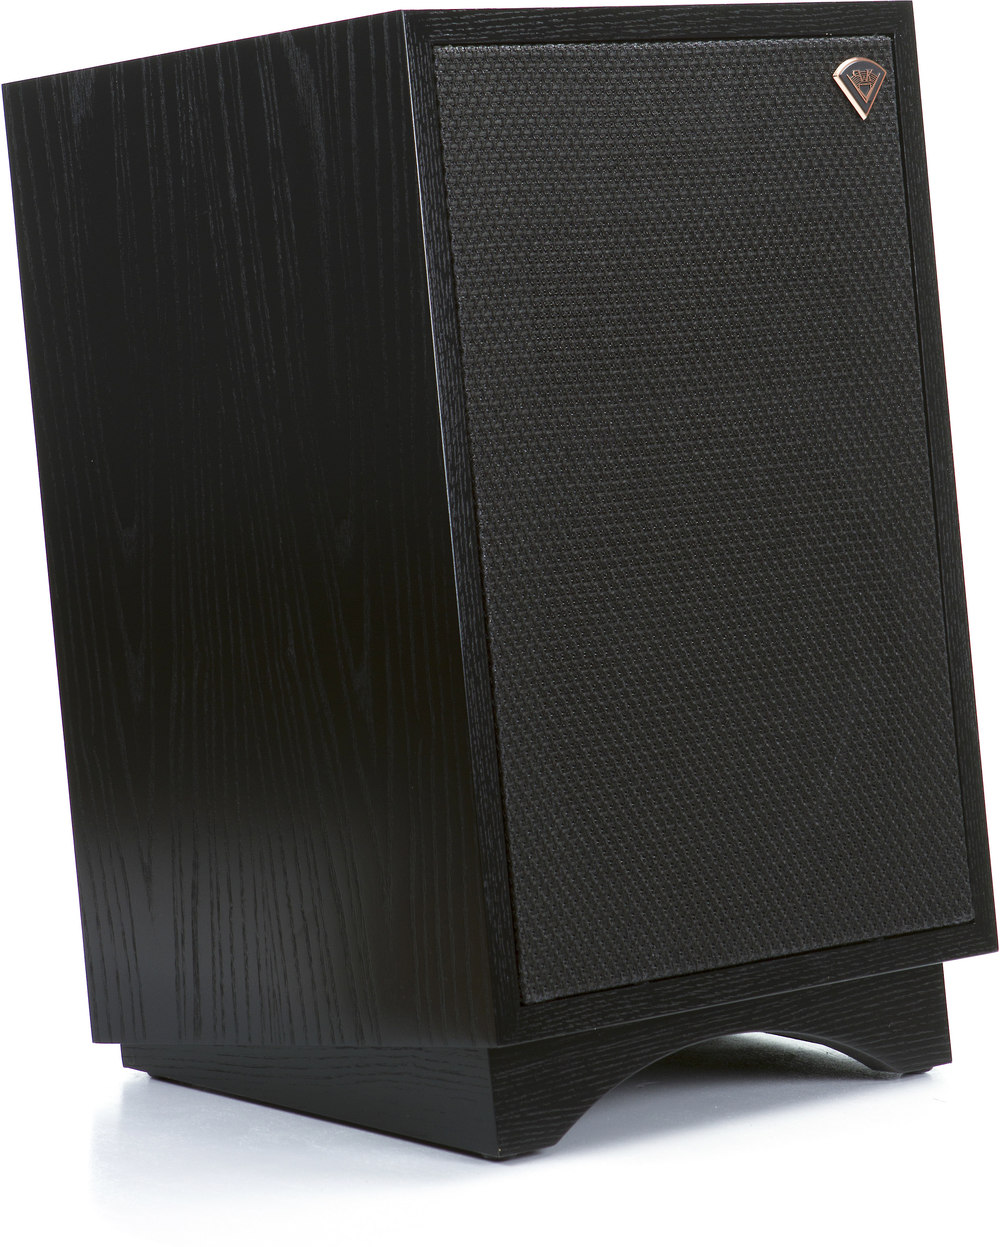 pinterest ses klipsch cihazlar me floor iii trade speakers pin cornwall floors